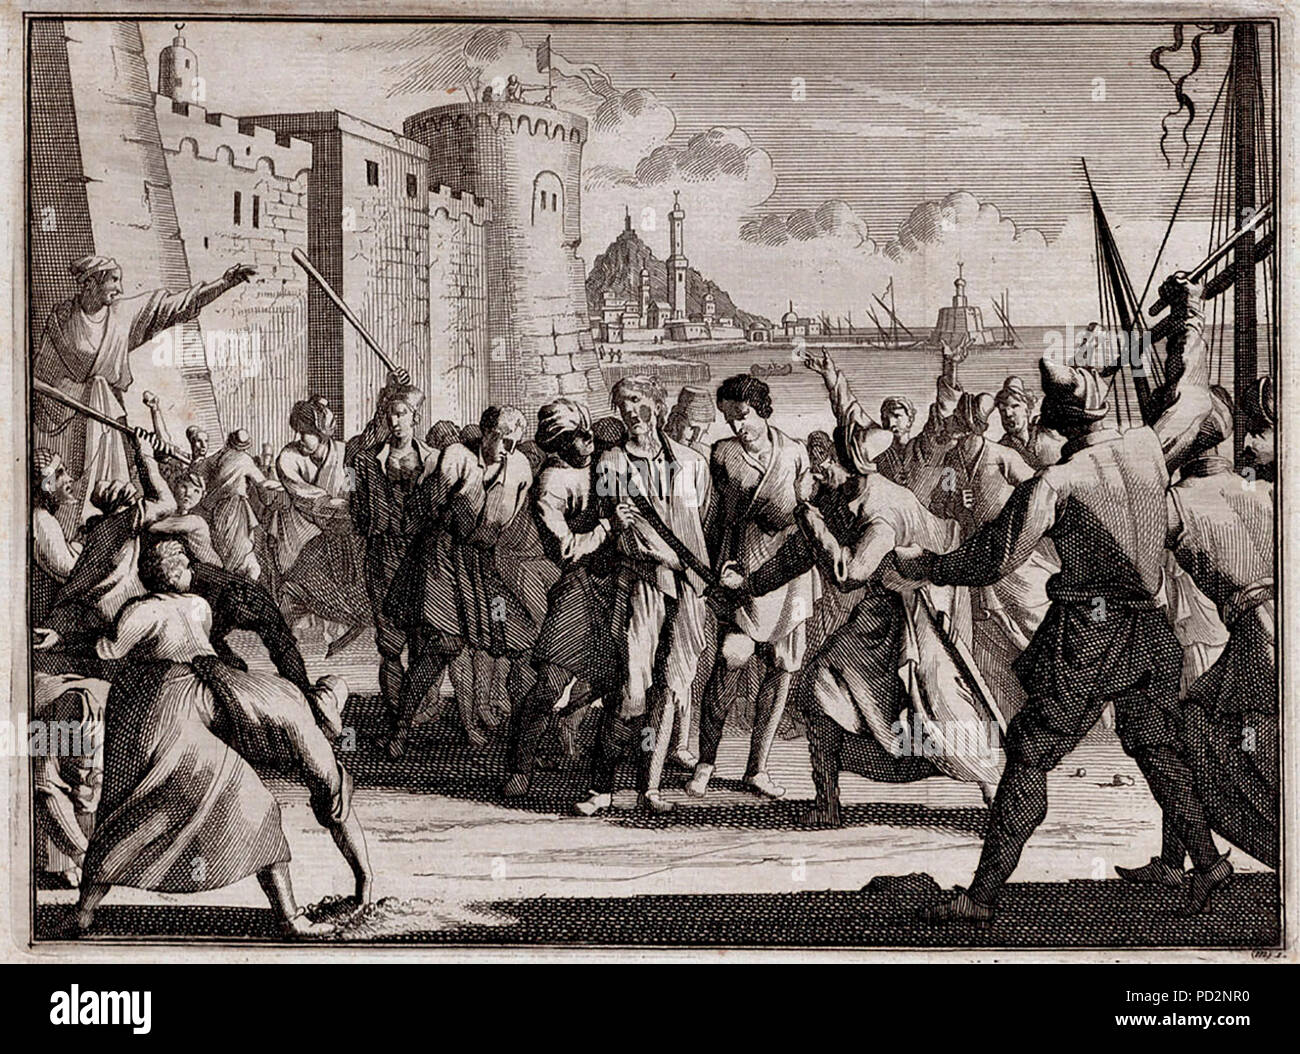 Disembarkation and mistreatment of prisoners in Algiers, 1706 - Stock Image